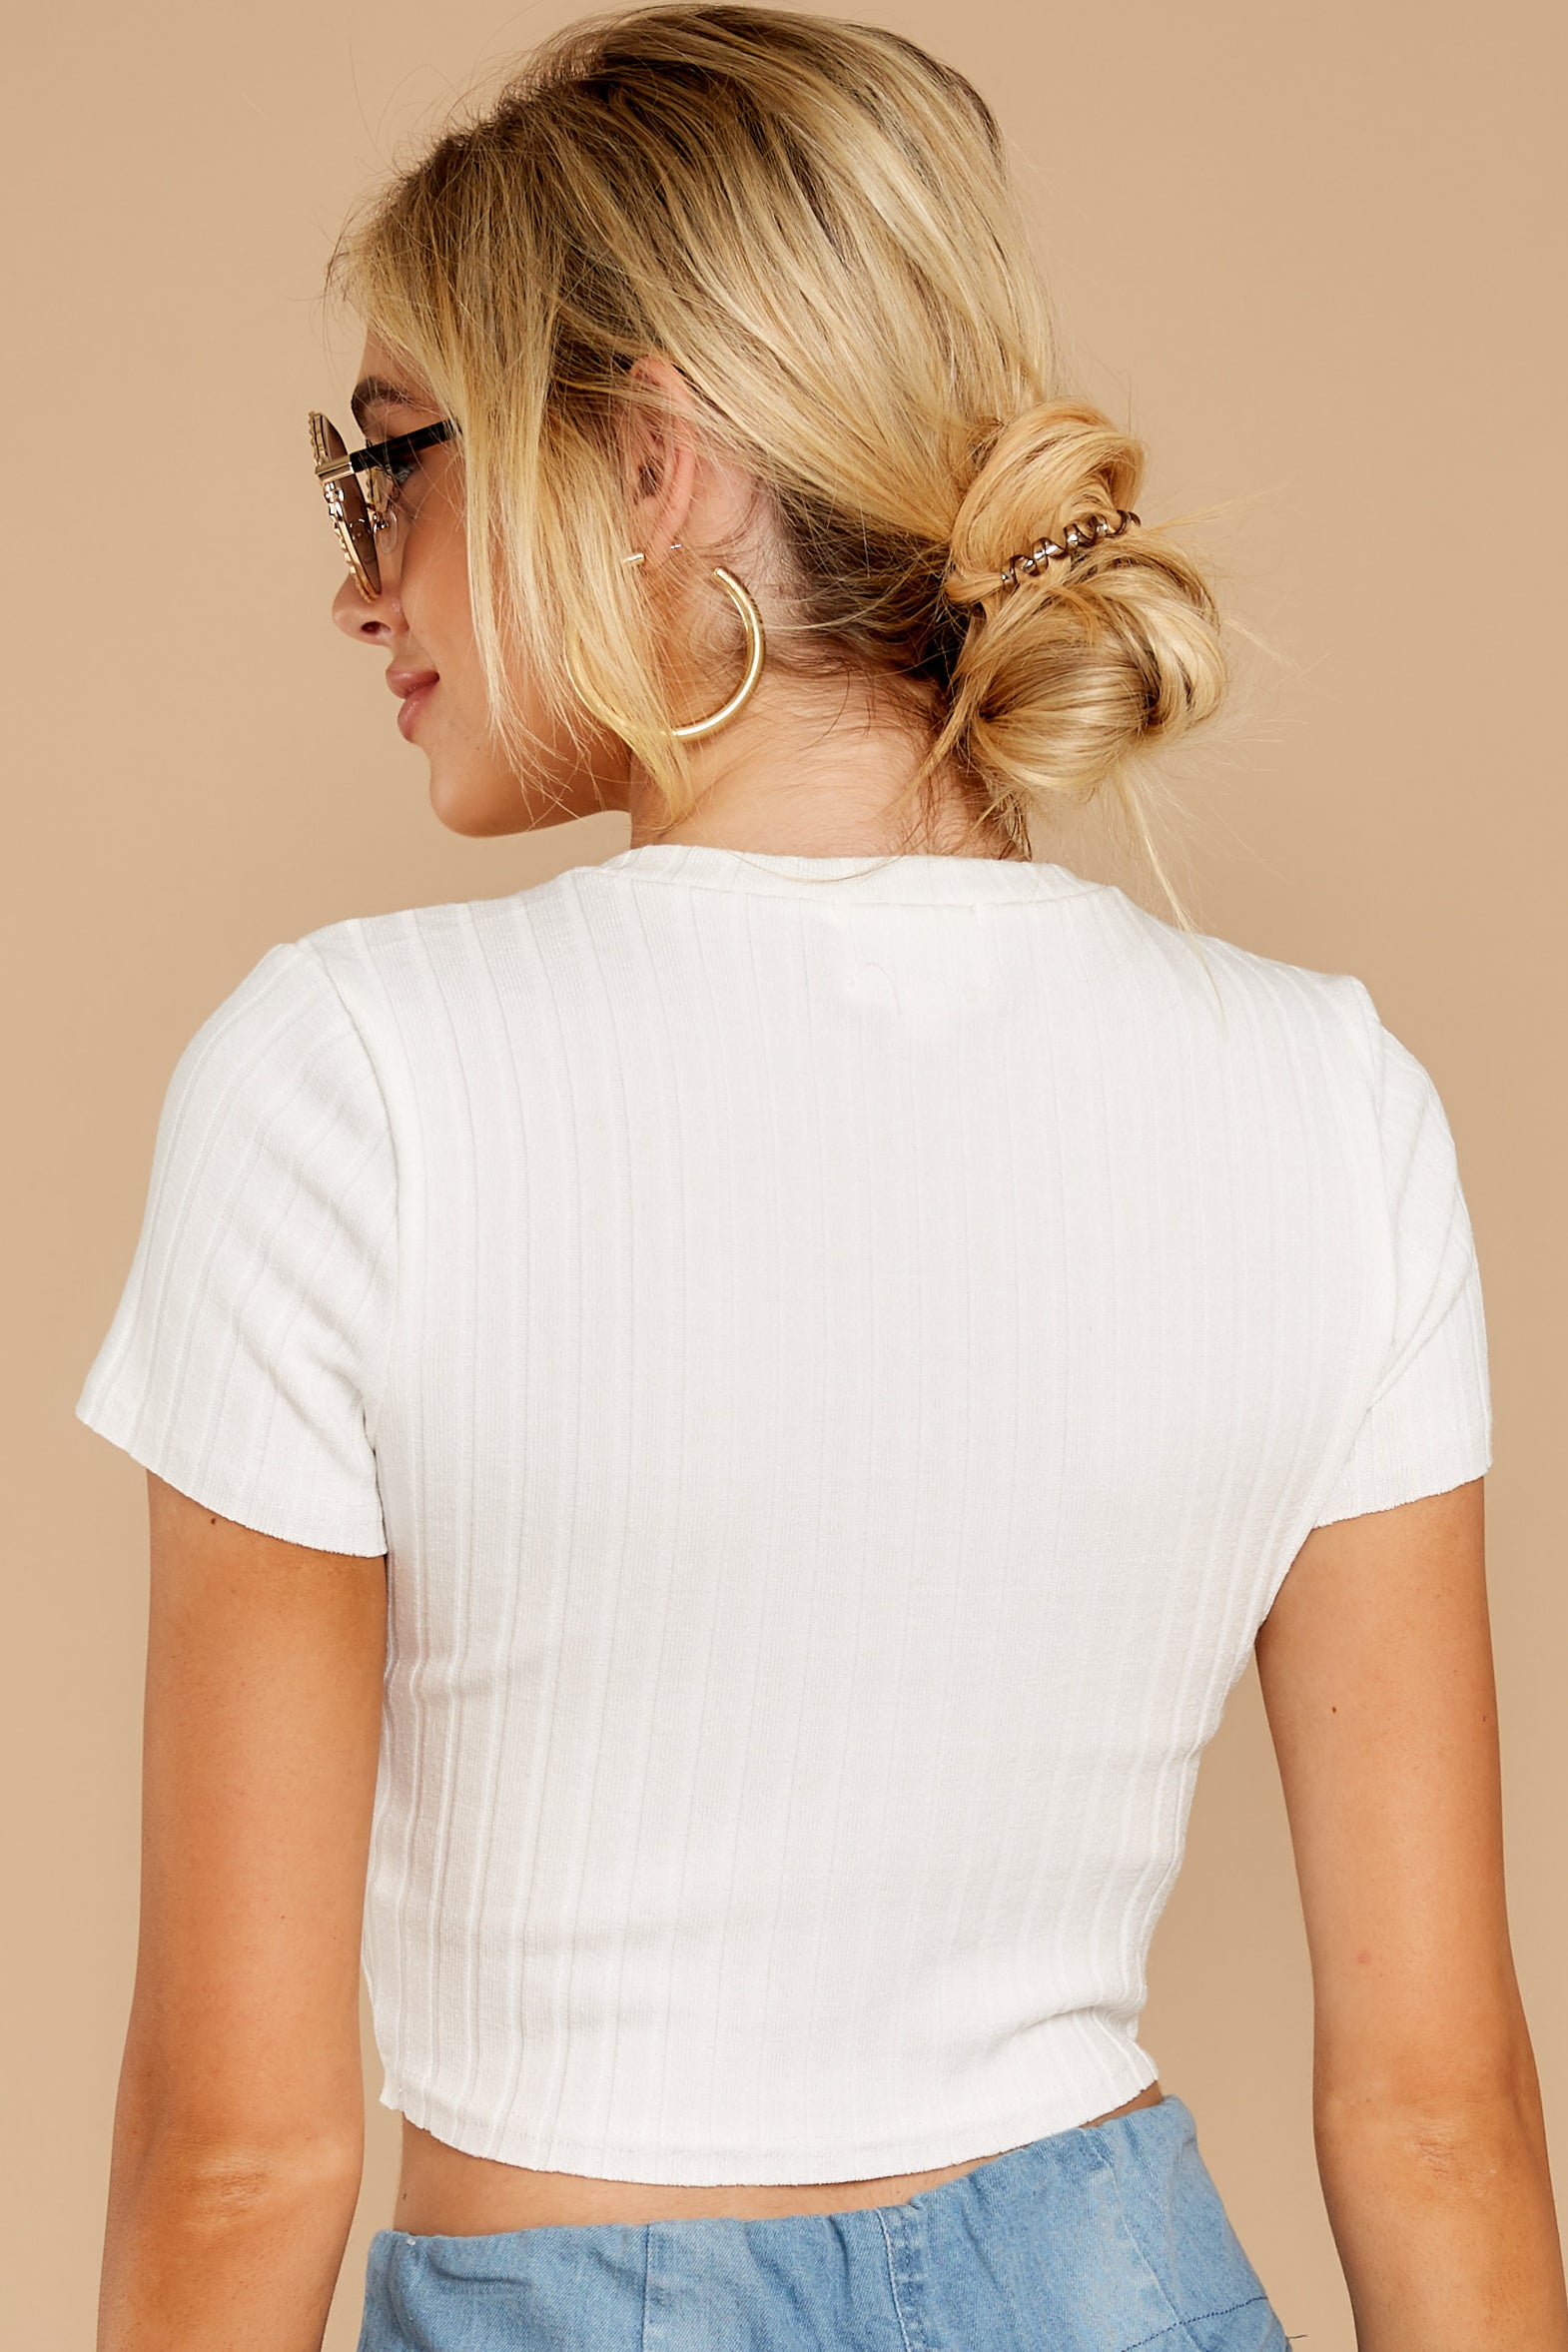 The Way To L.A. White Crop Top